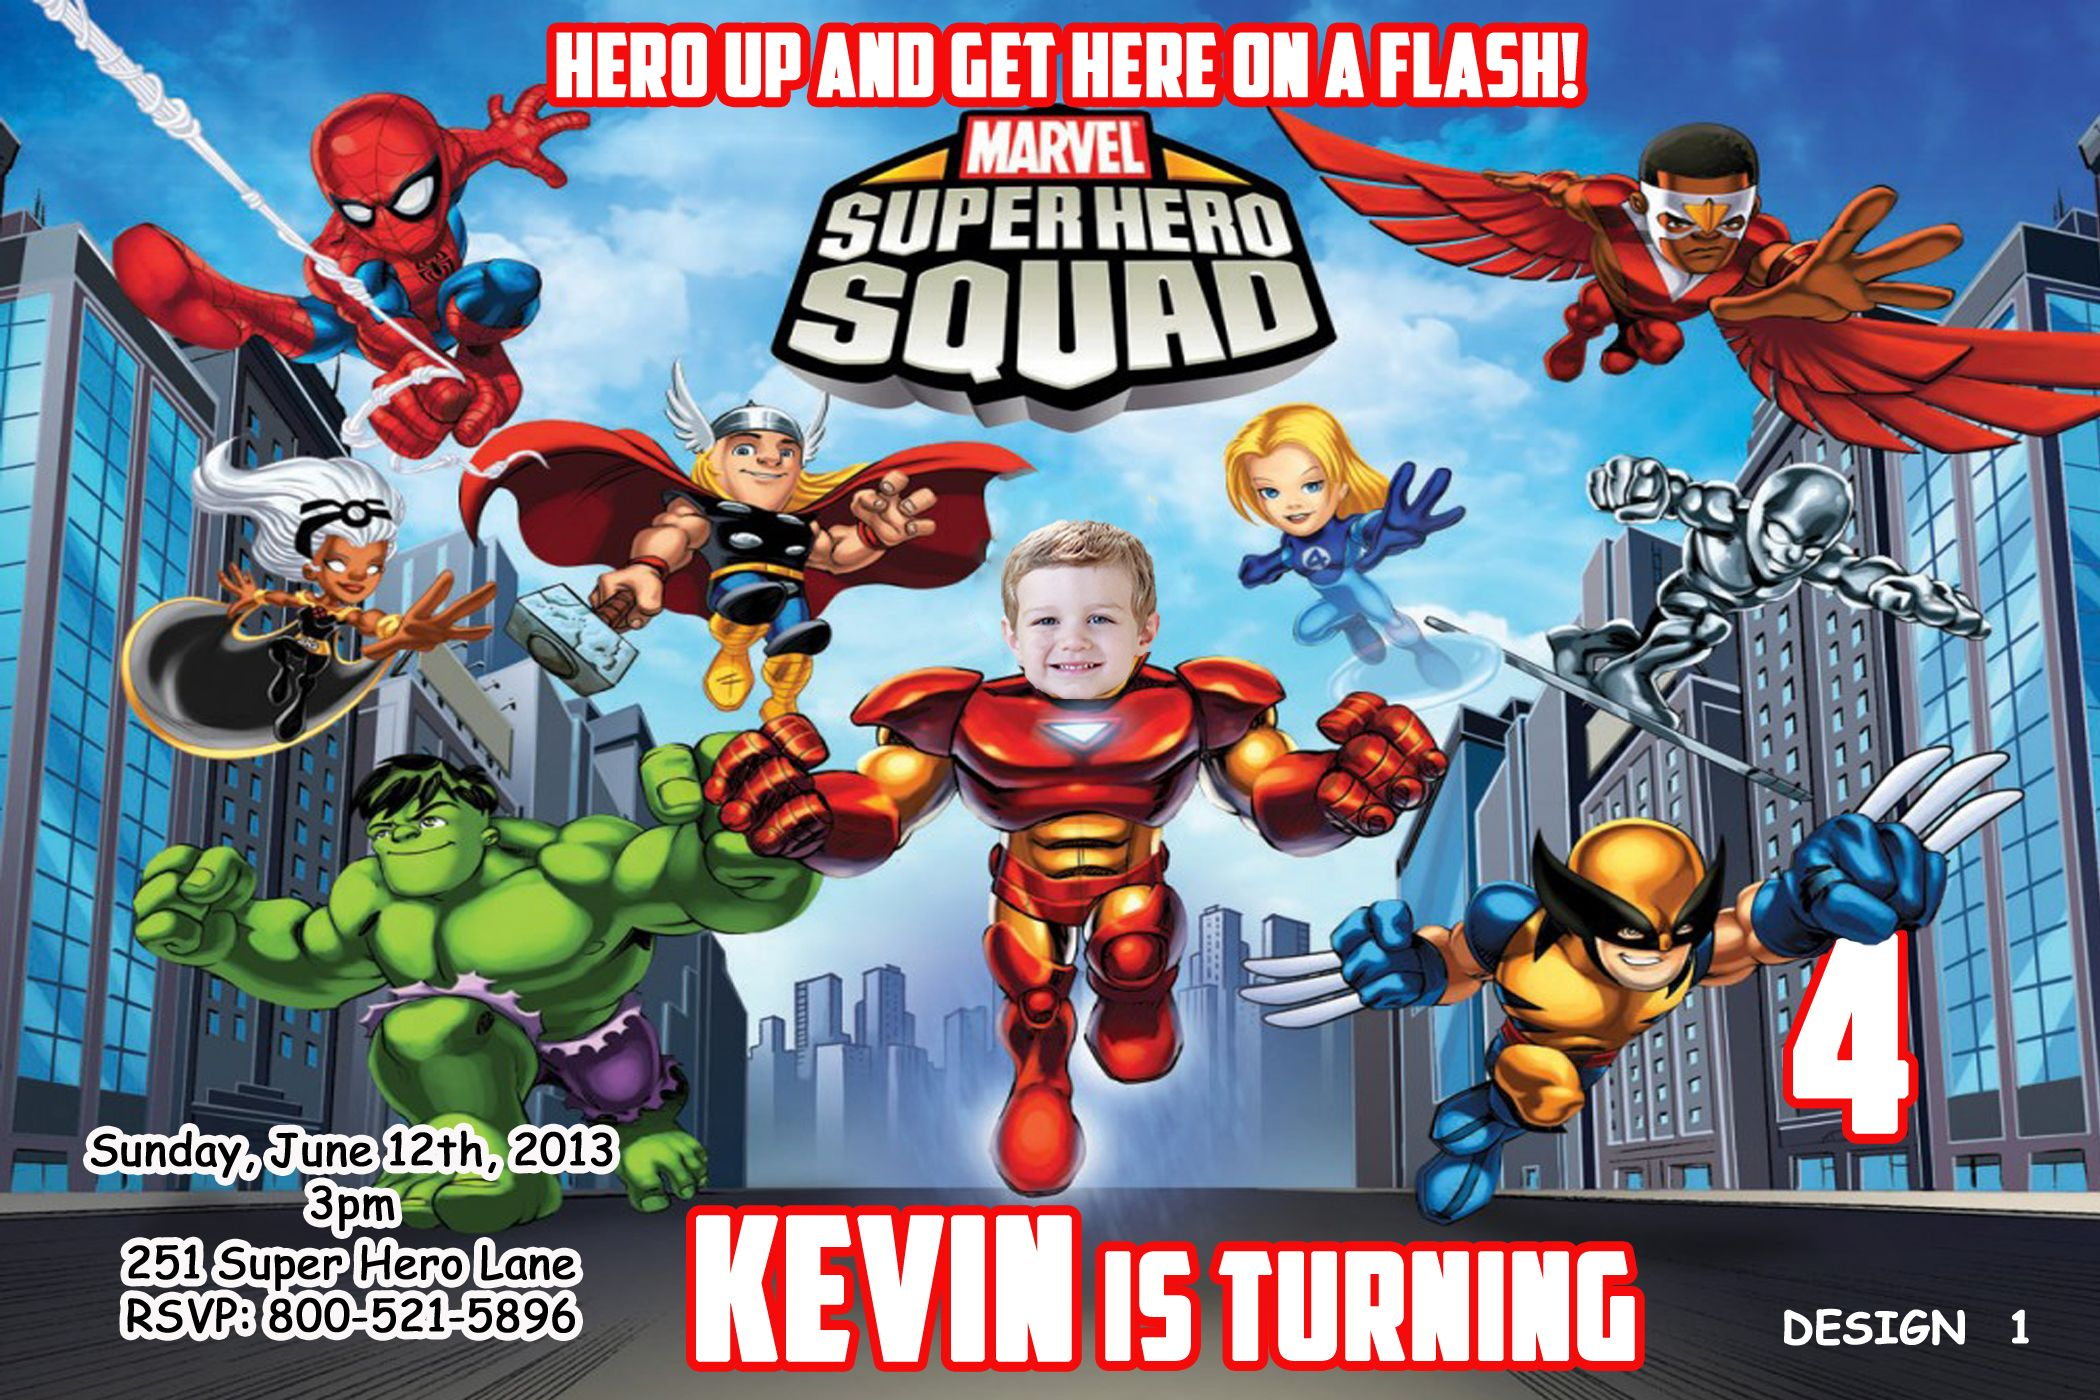 Super Heroes Squad Birthday Invitation $8.99 | Marvel Super Heroes ...